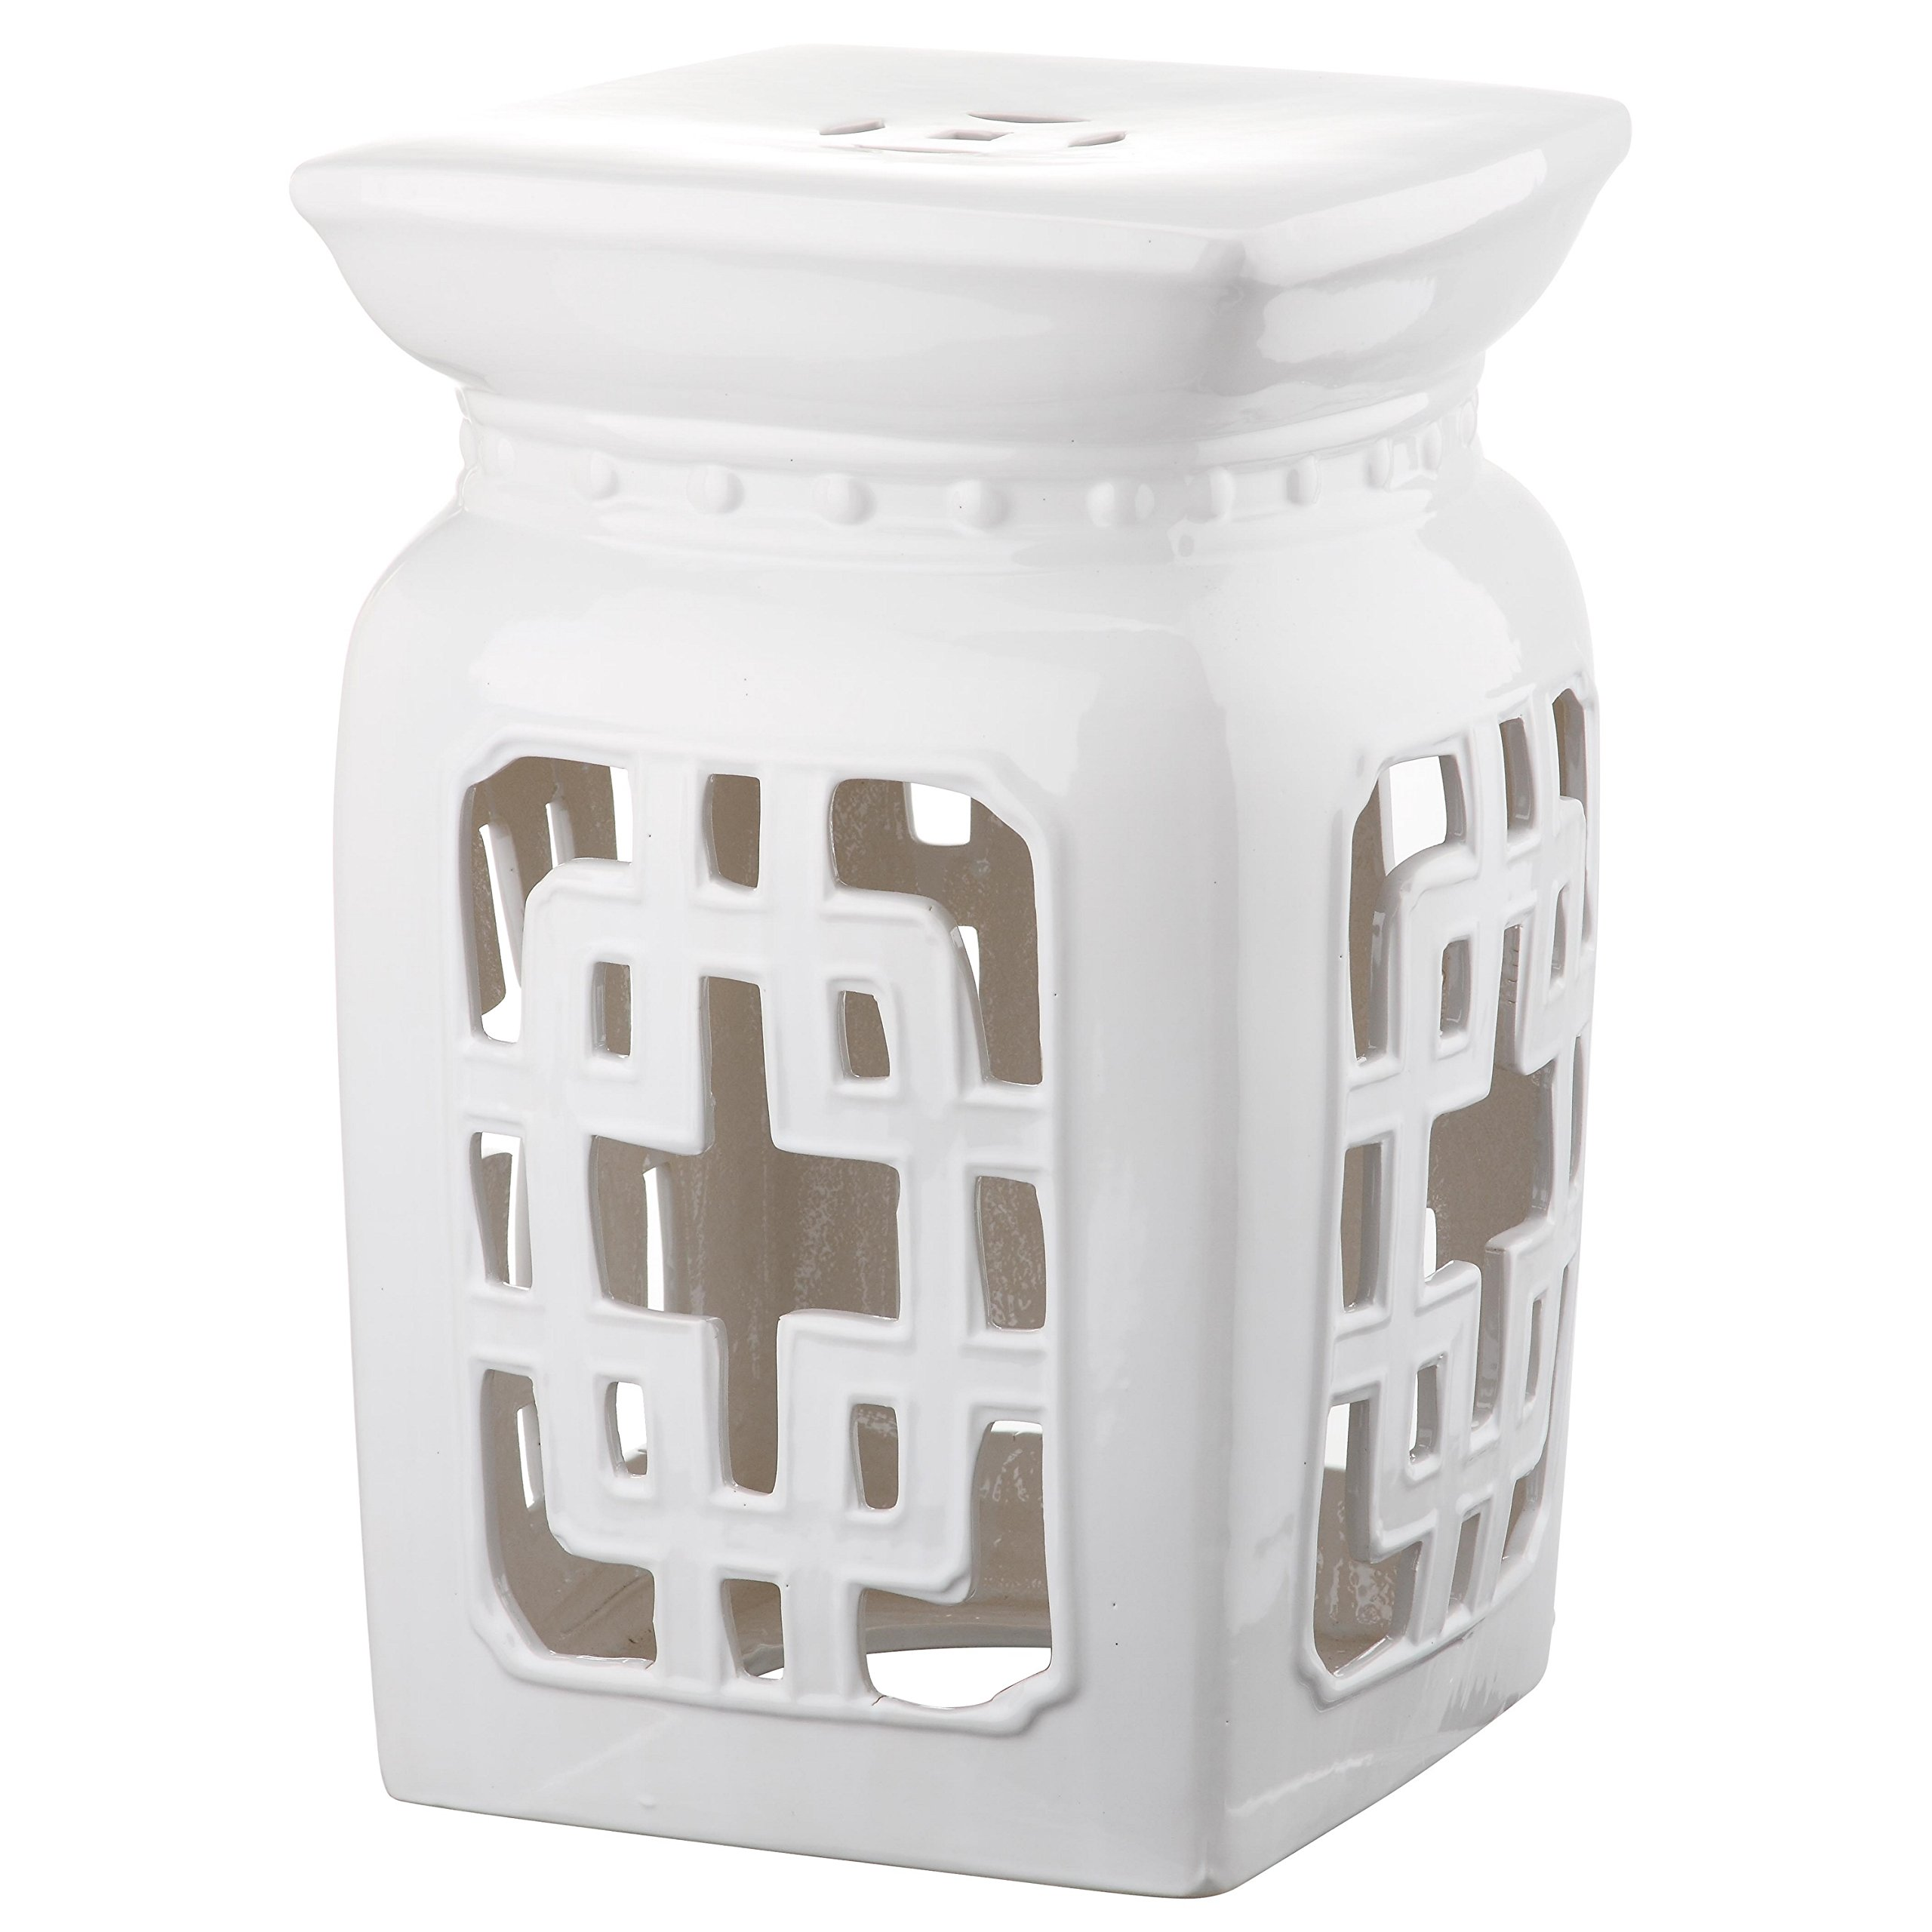 Safavieh Castle Gardens Collection Beijing Filigree Antique White Glazed Ceramic Garden Stool